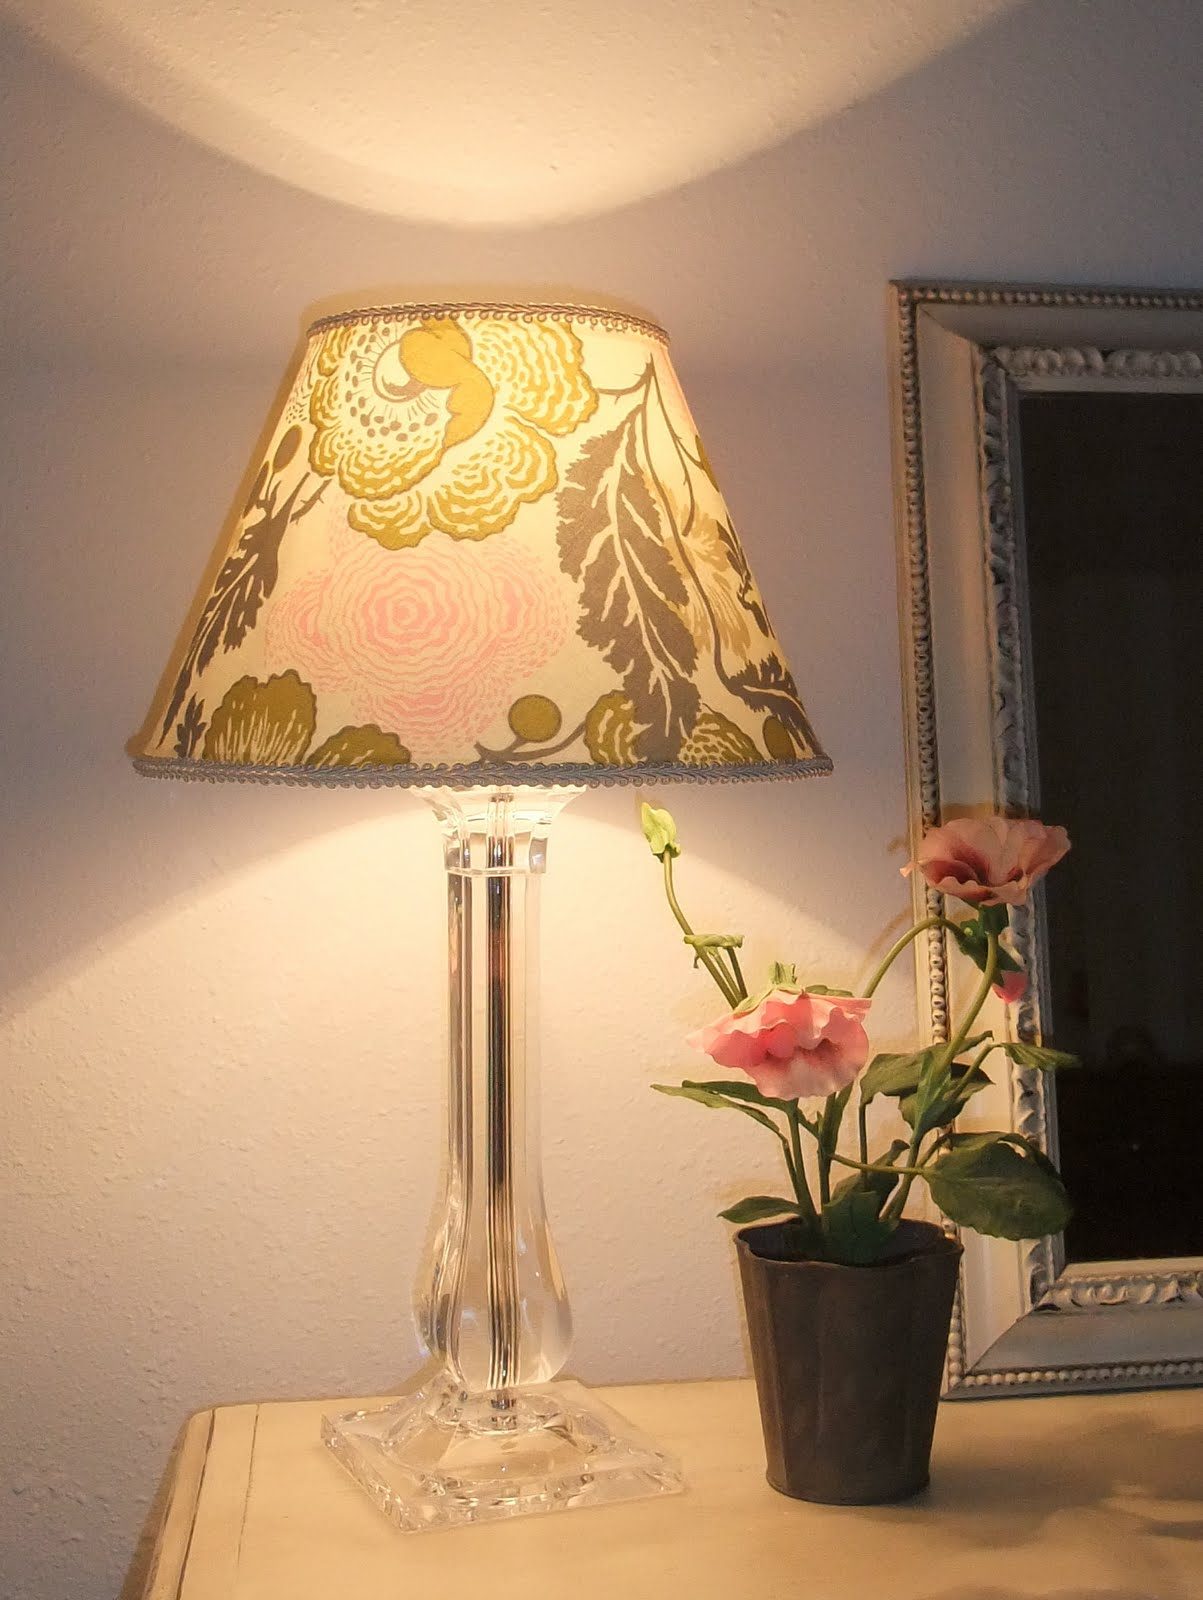 Just another hang up lamp shade redo for Redoing lamp shades